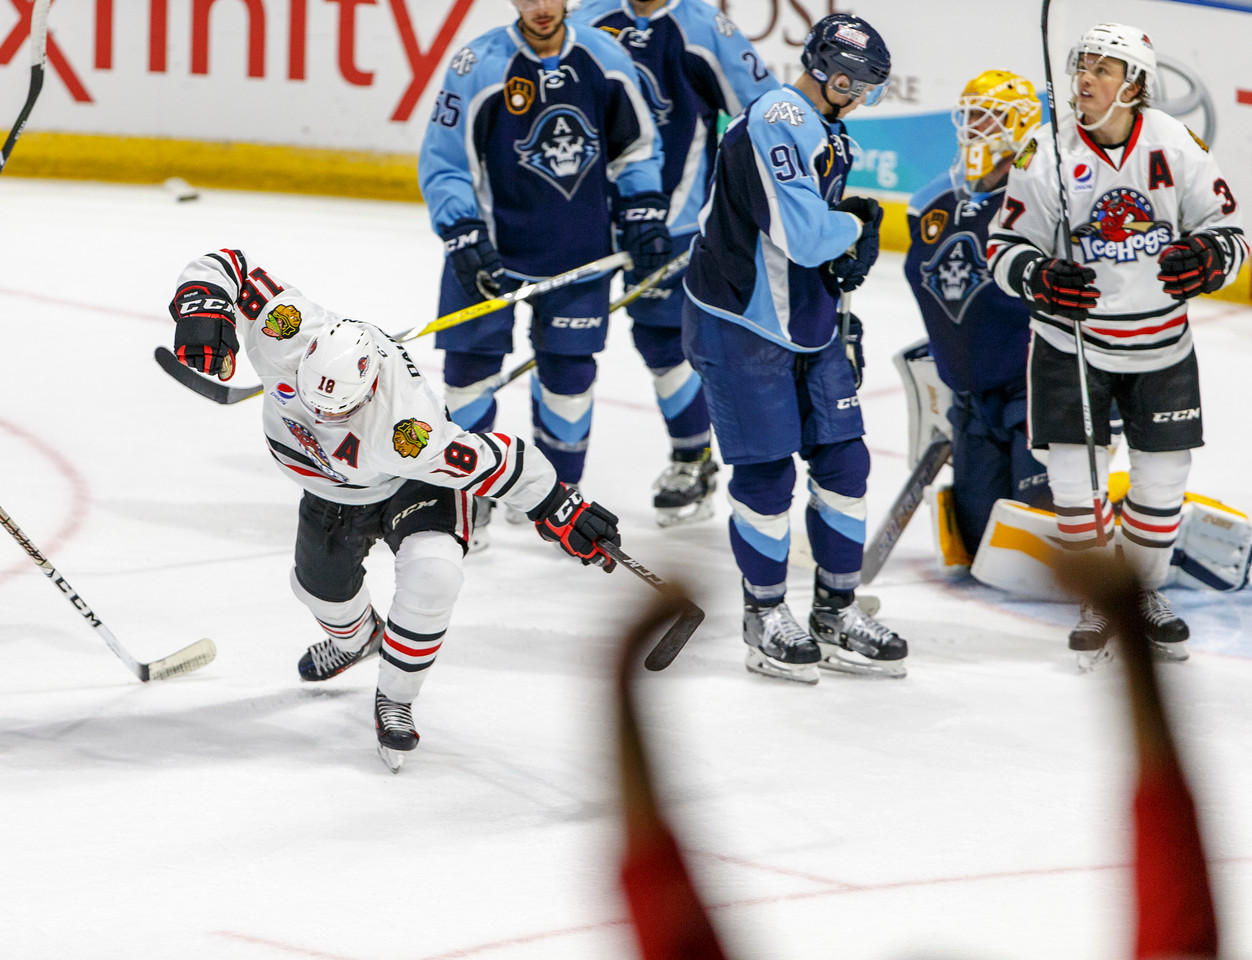 IMAGE: https://photos.smugmug.com/Sports/HockeyPhotos/IceHogs-2017-2018/10-15-17-IceHogs-vs-Admirals/i-58FdN7z/0/8245315c/X2/CC6Q4183_0776-X2.jpg